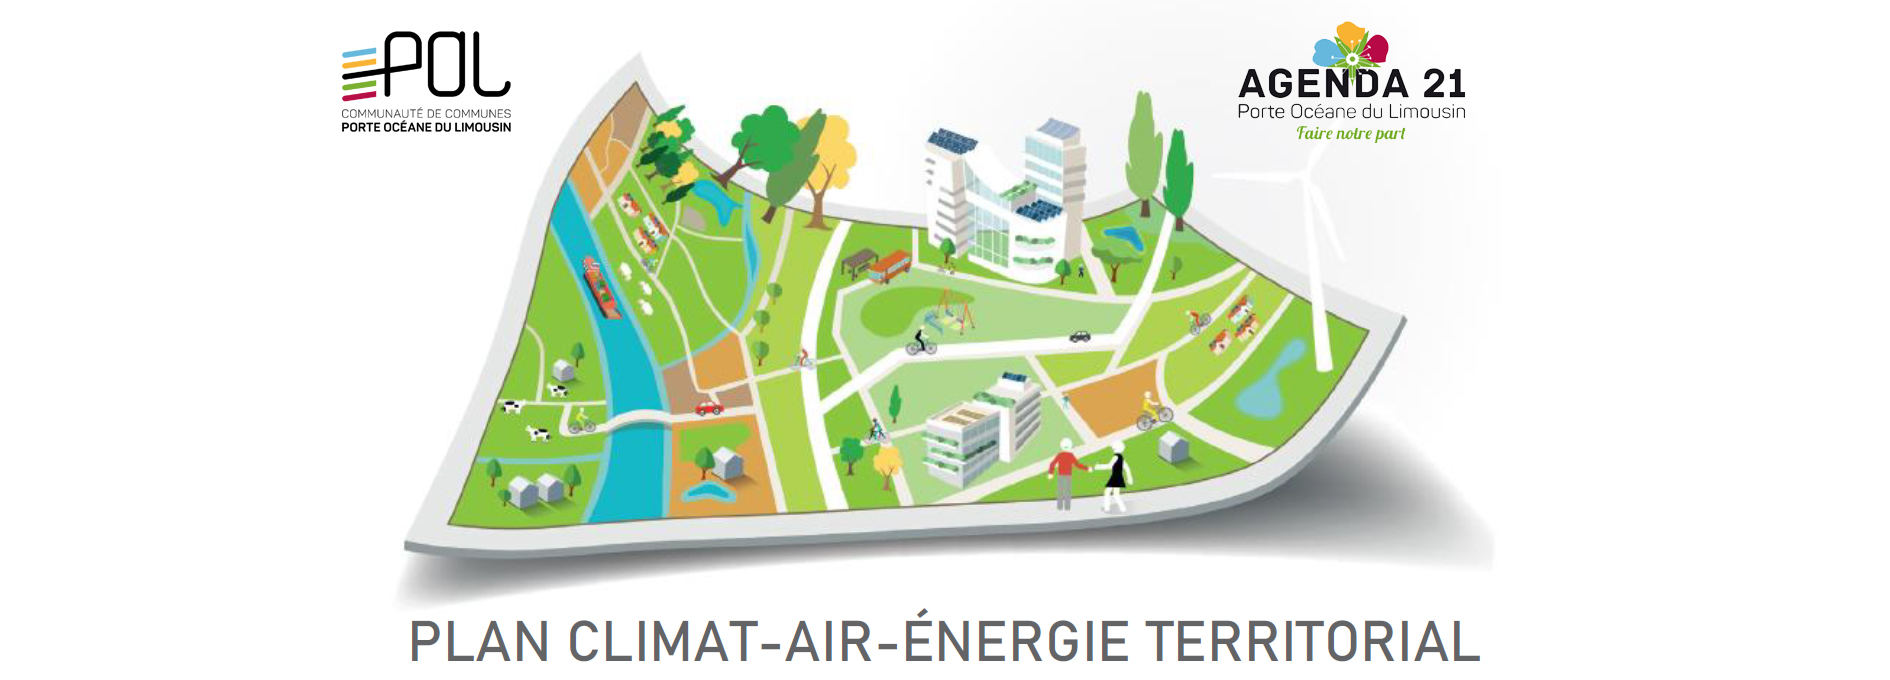 Plan Climat-Air-Energie Territorial